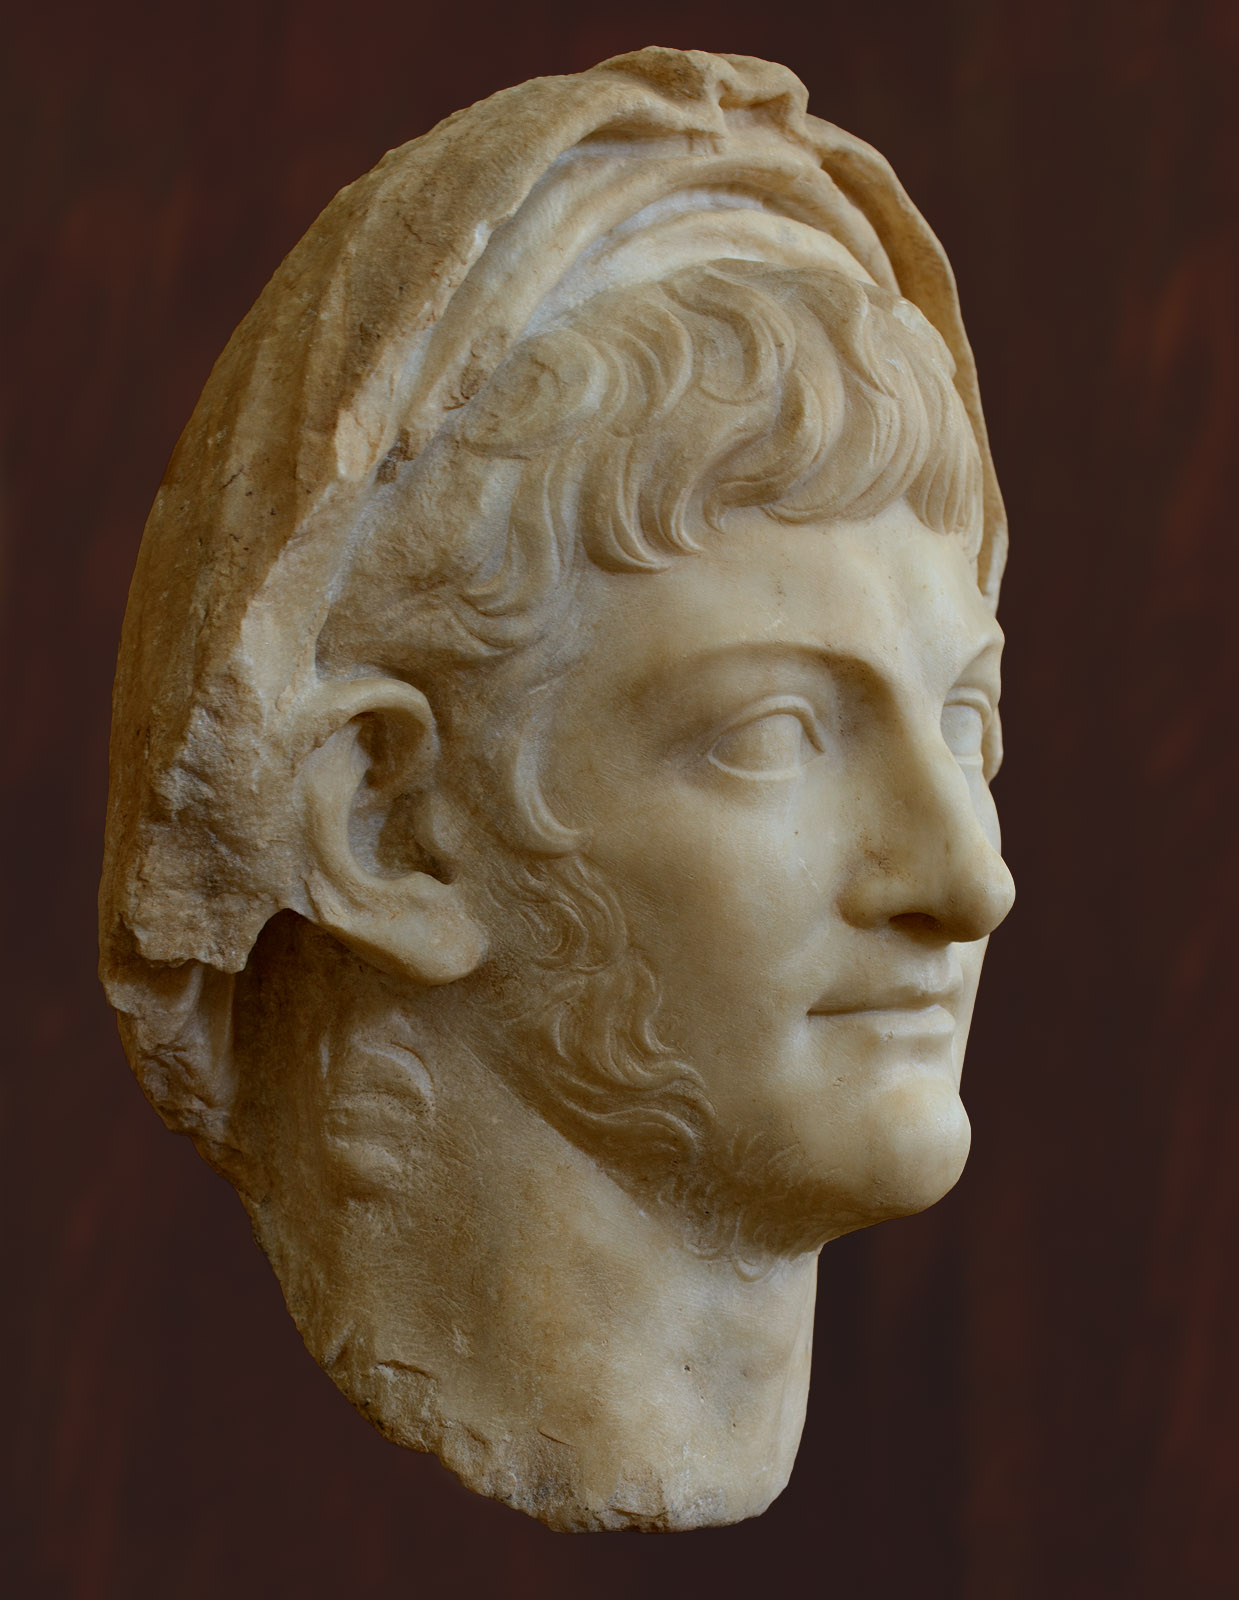 Portrait head of the emperor Nero. Marble. Ca. 60 CE. Inv. No. S-1088. Corinth, Archaeological Museum of Ancient Corinth